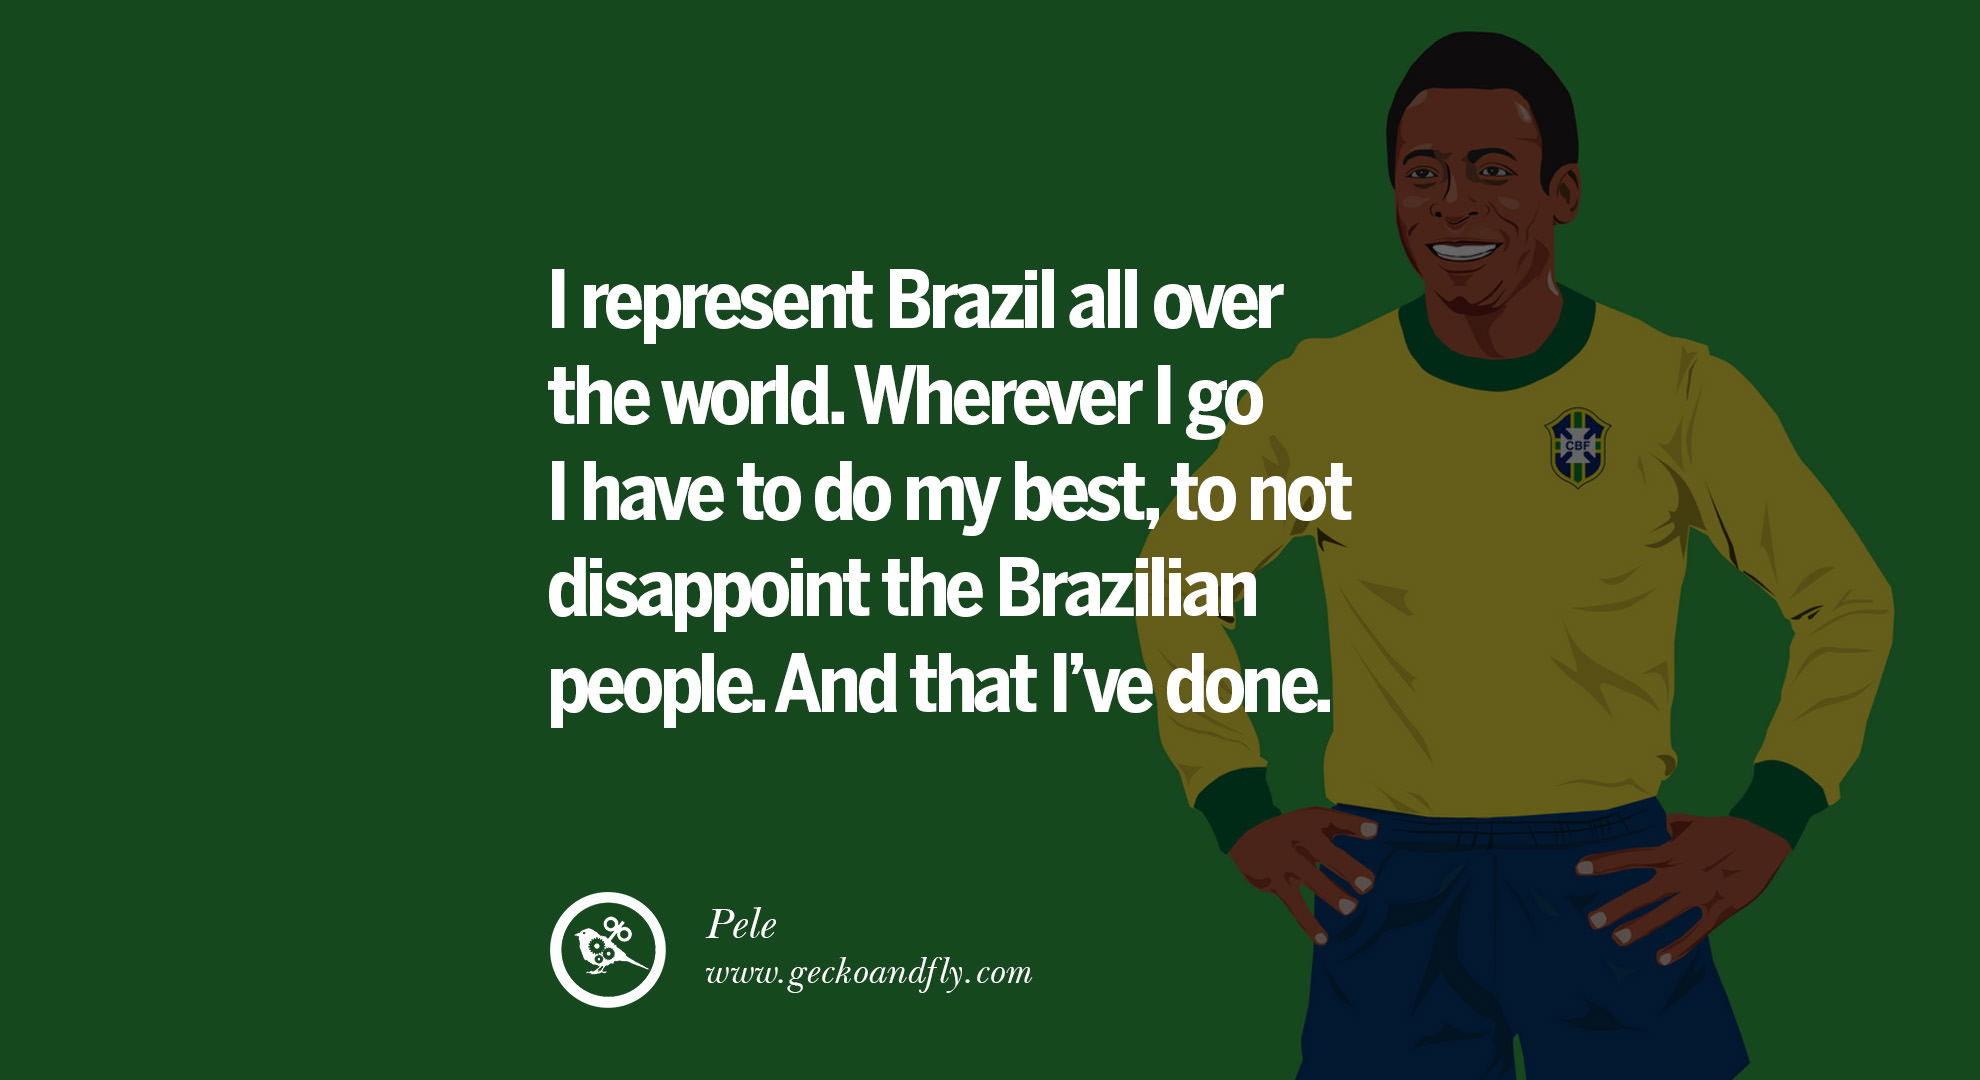 Best Football Quotes: 12 Inspiring Quotes From Pele The Greatest Football Legend